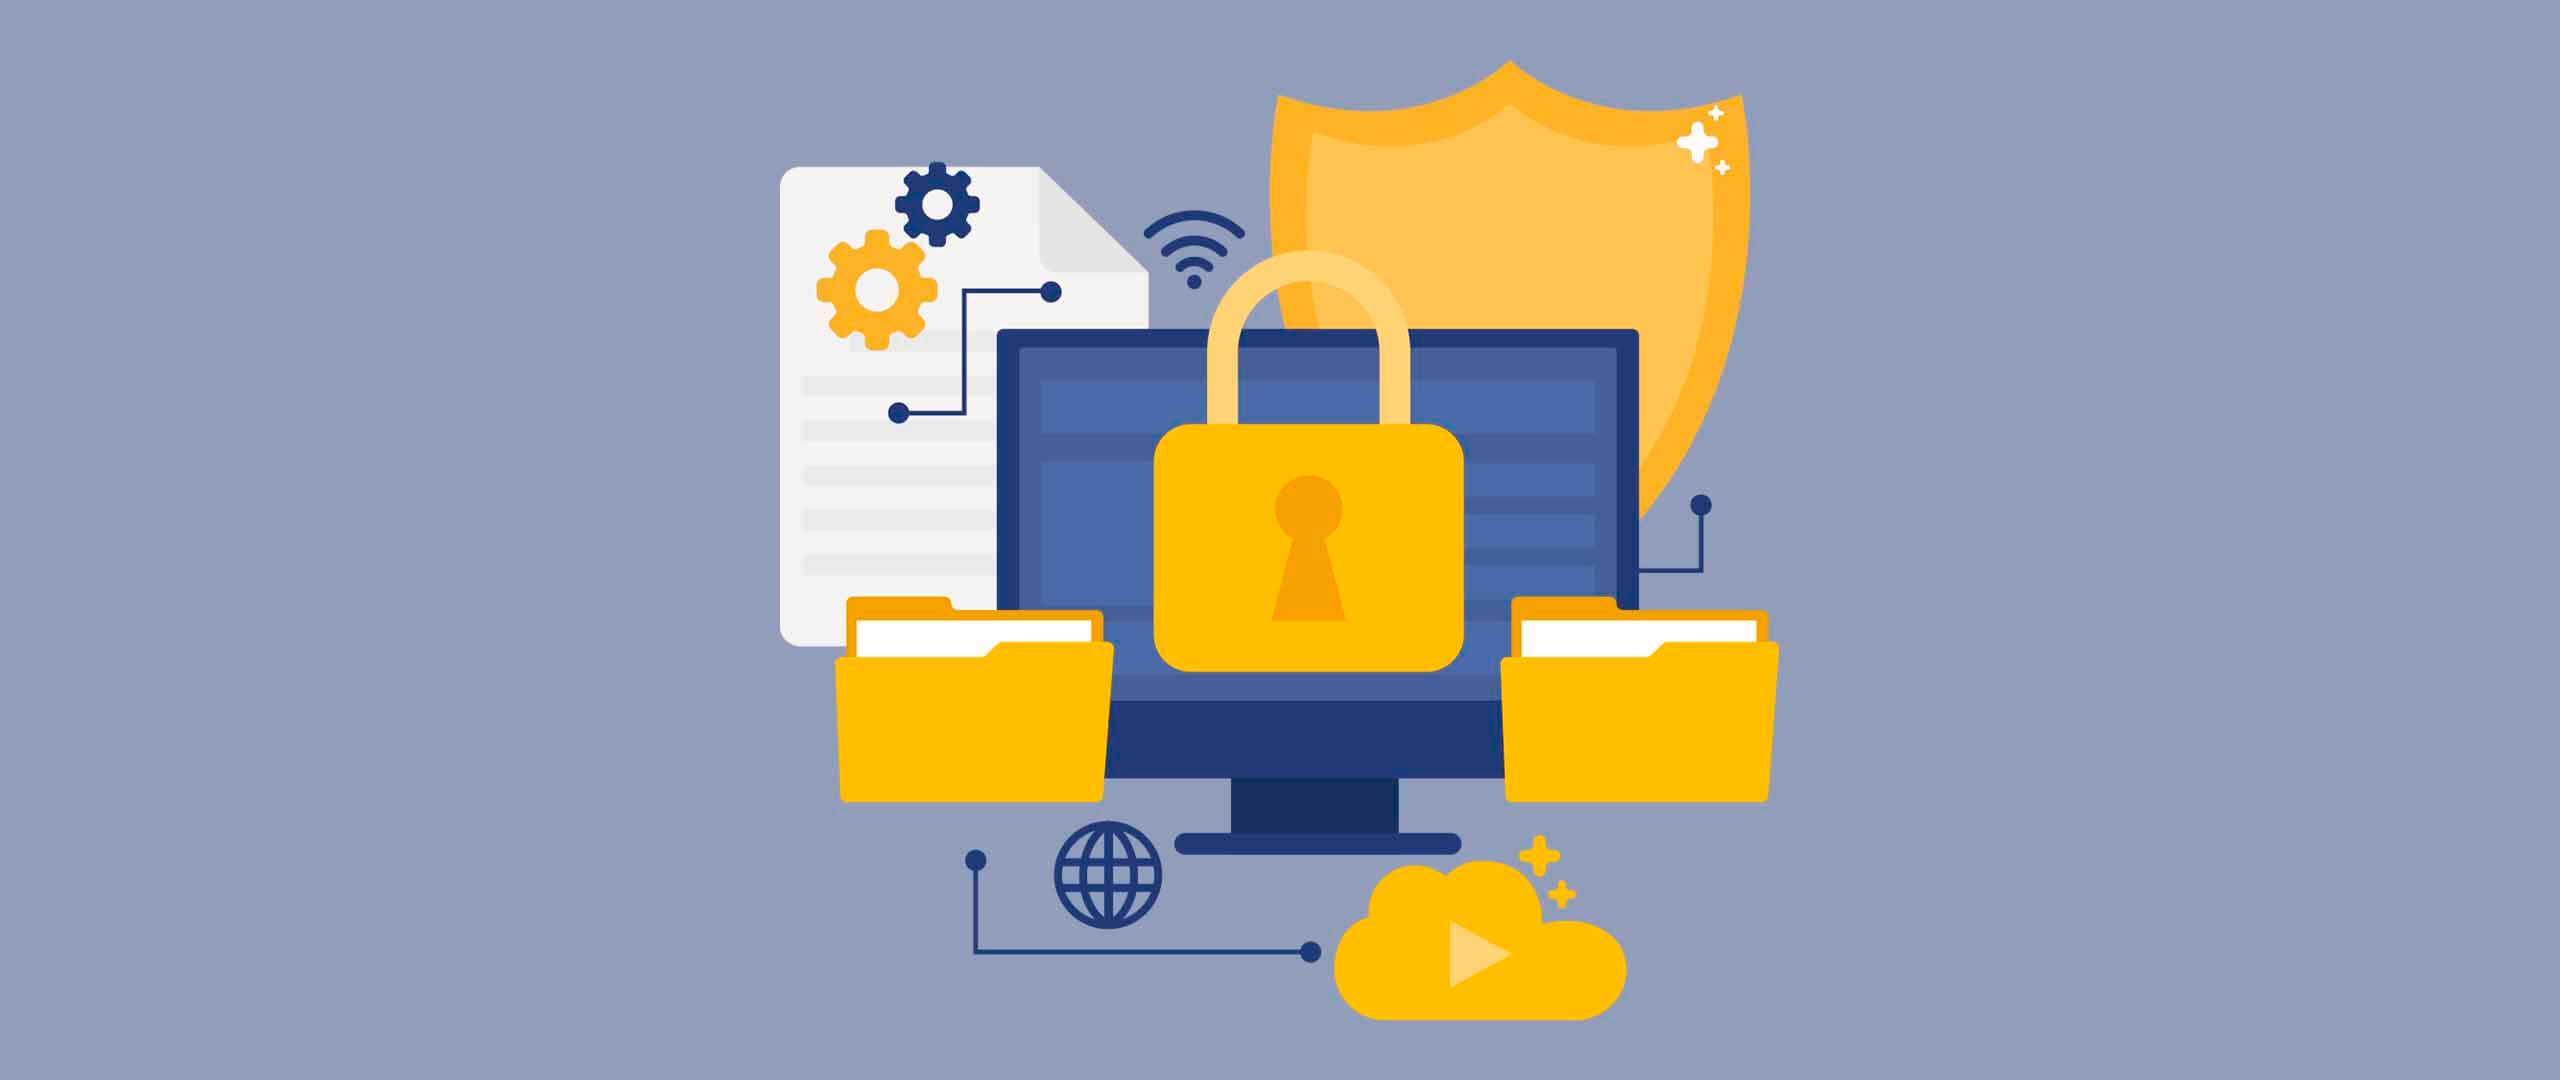 Small Business Website Privacy Policy Requirements